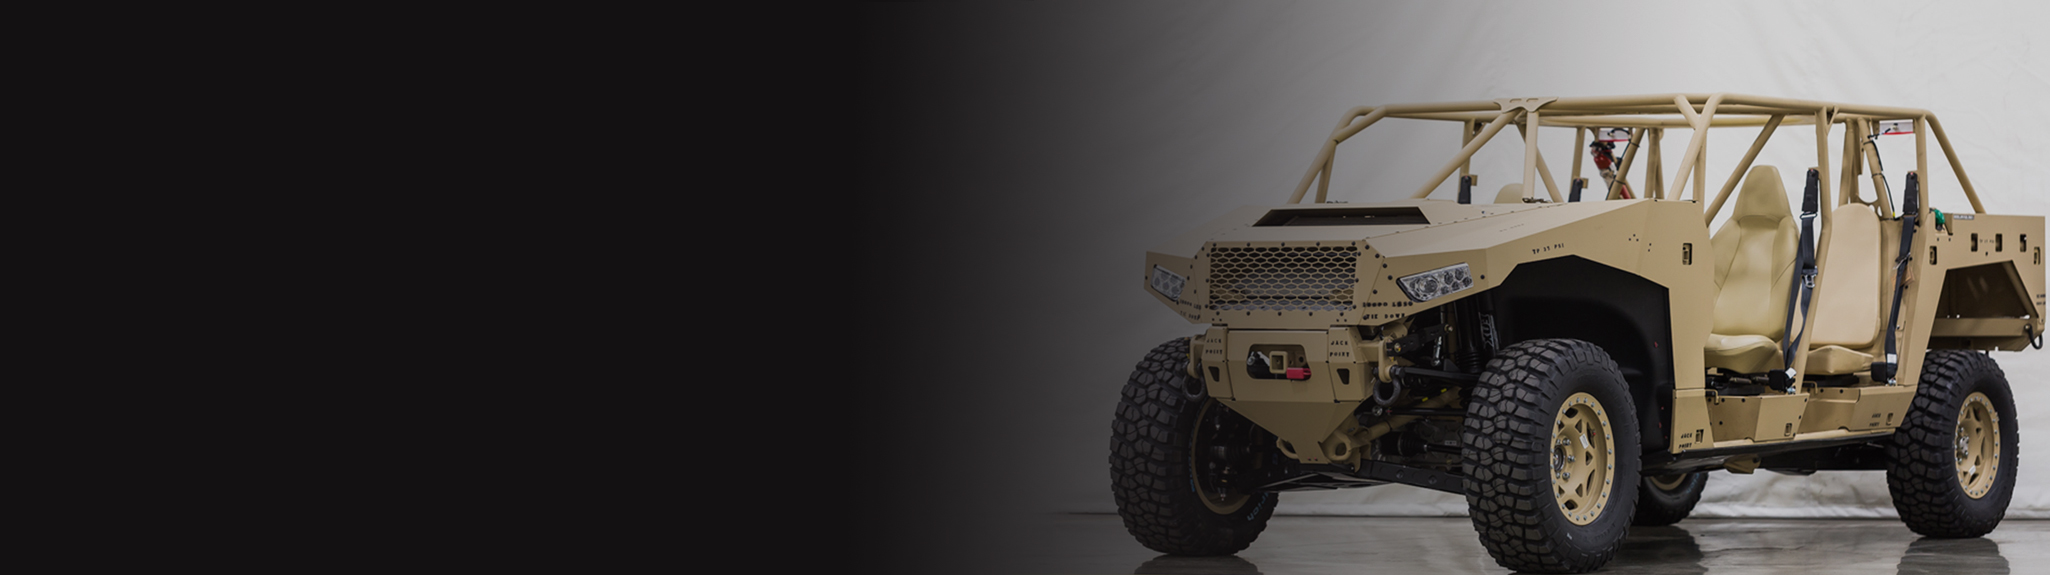 All New Military Off-road Vehicle